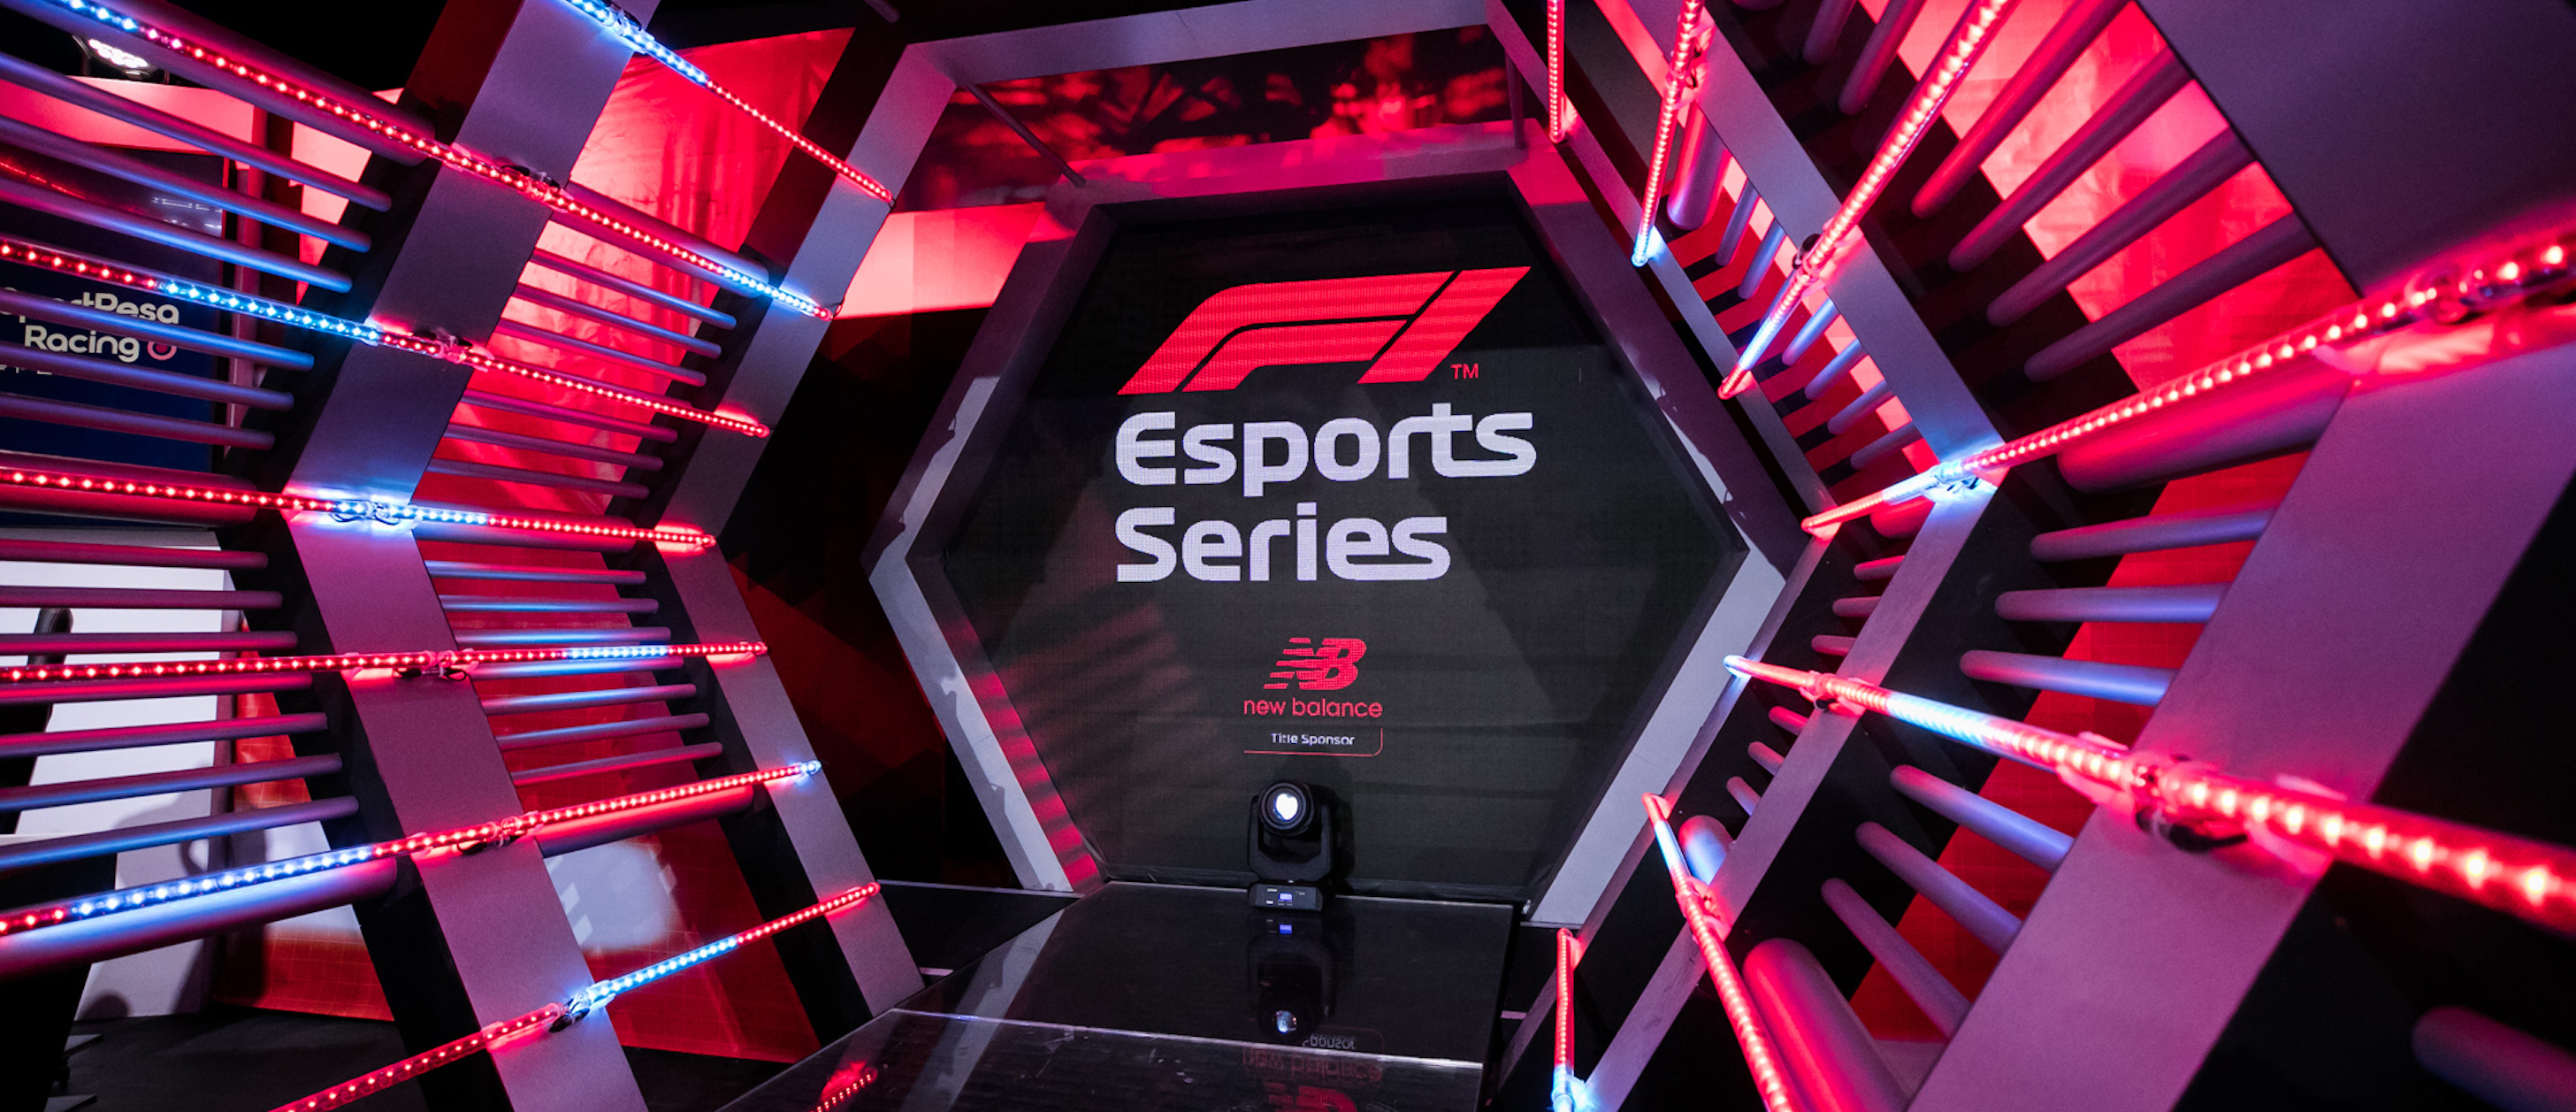 Pro Series 2019 Is Just Around the Corner!